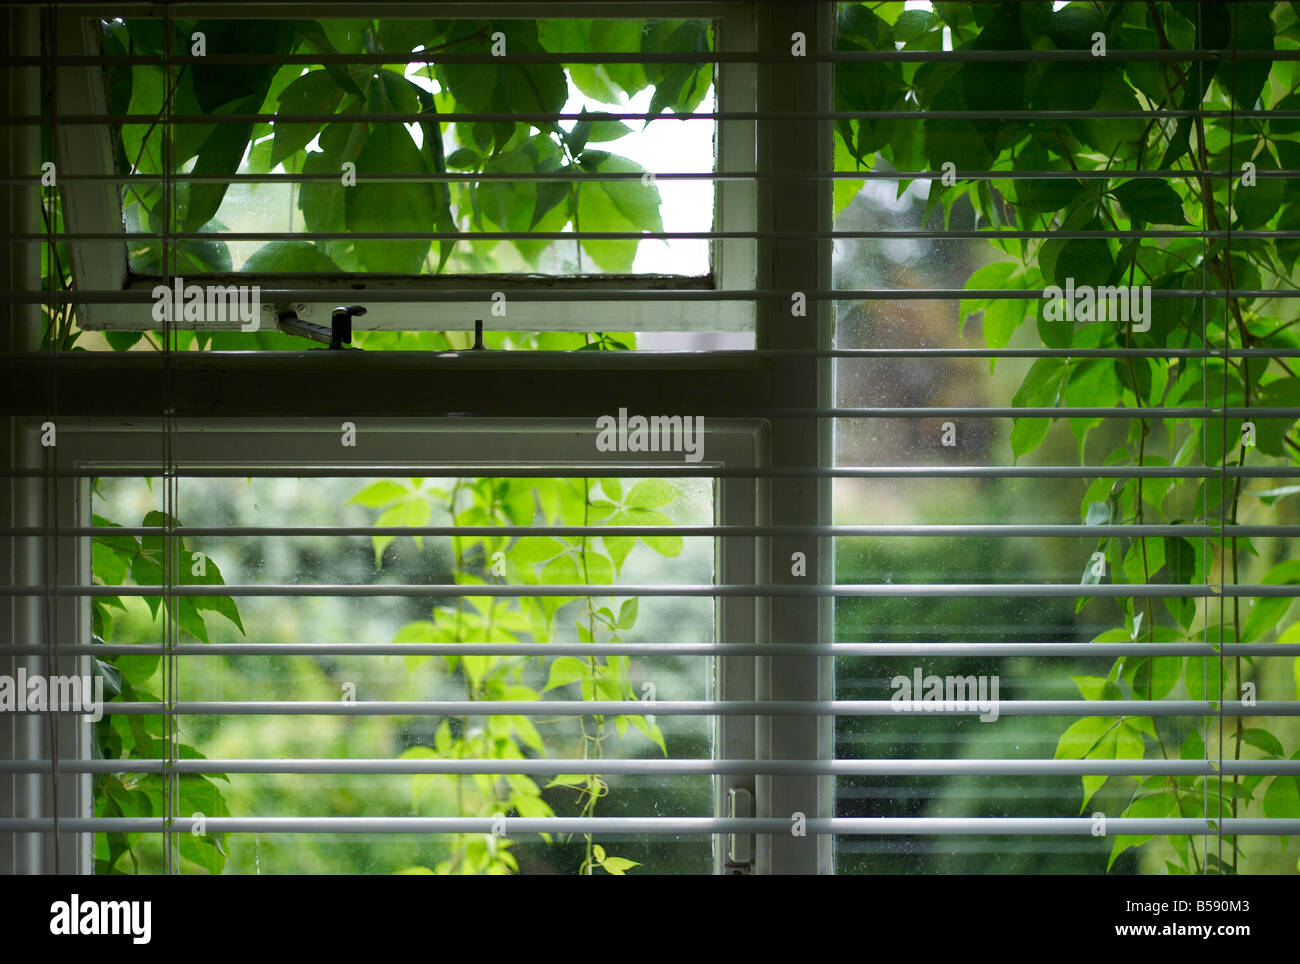 Venetian blinds on a window which is covered on the outside by ivy leaves - Stock Image